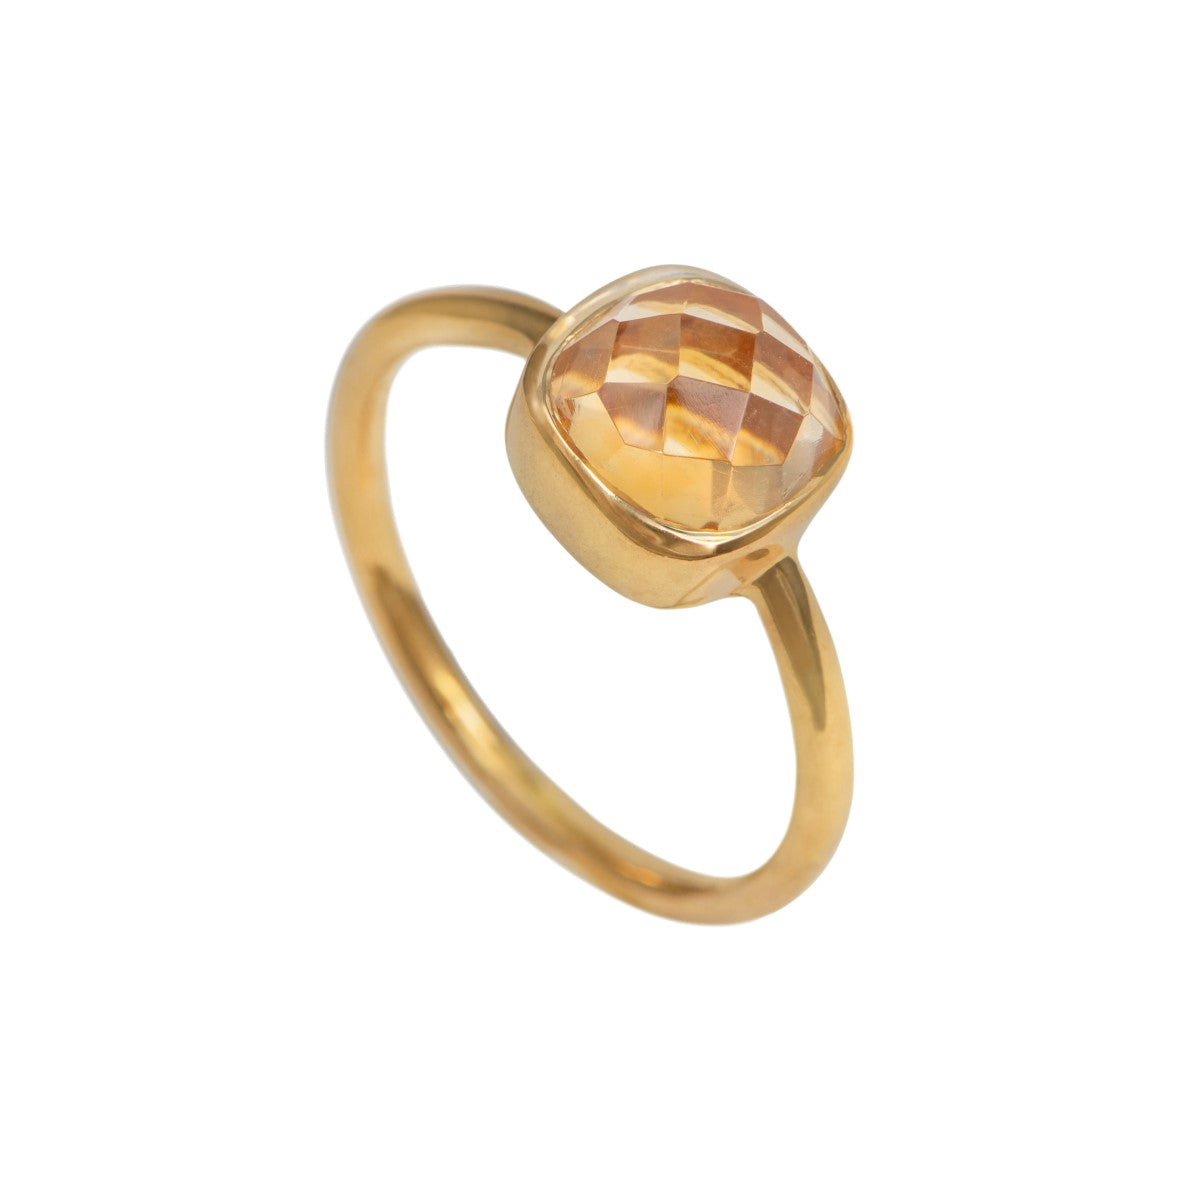 Faceted Square Cut Natural Gemstone Gold Plated Sterling Silver Solitaire Ring - Citrine